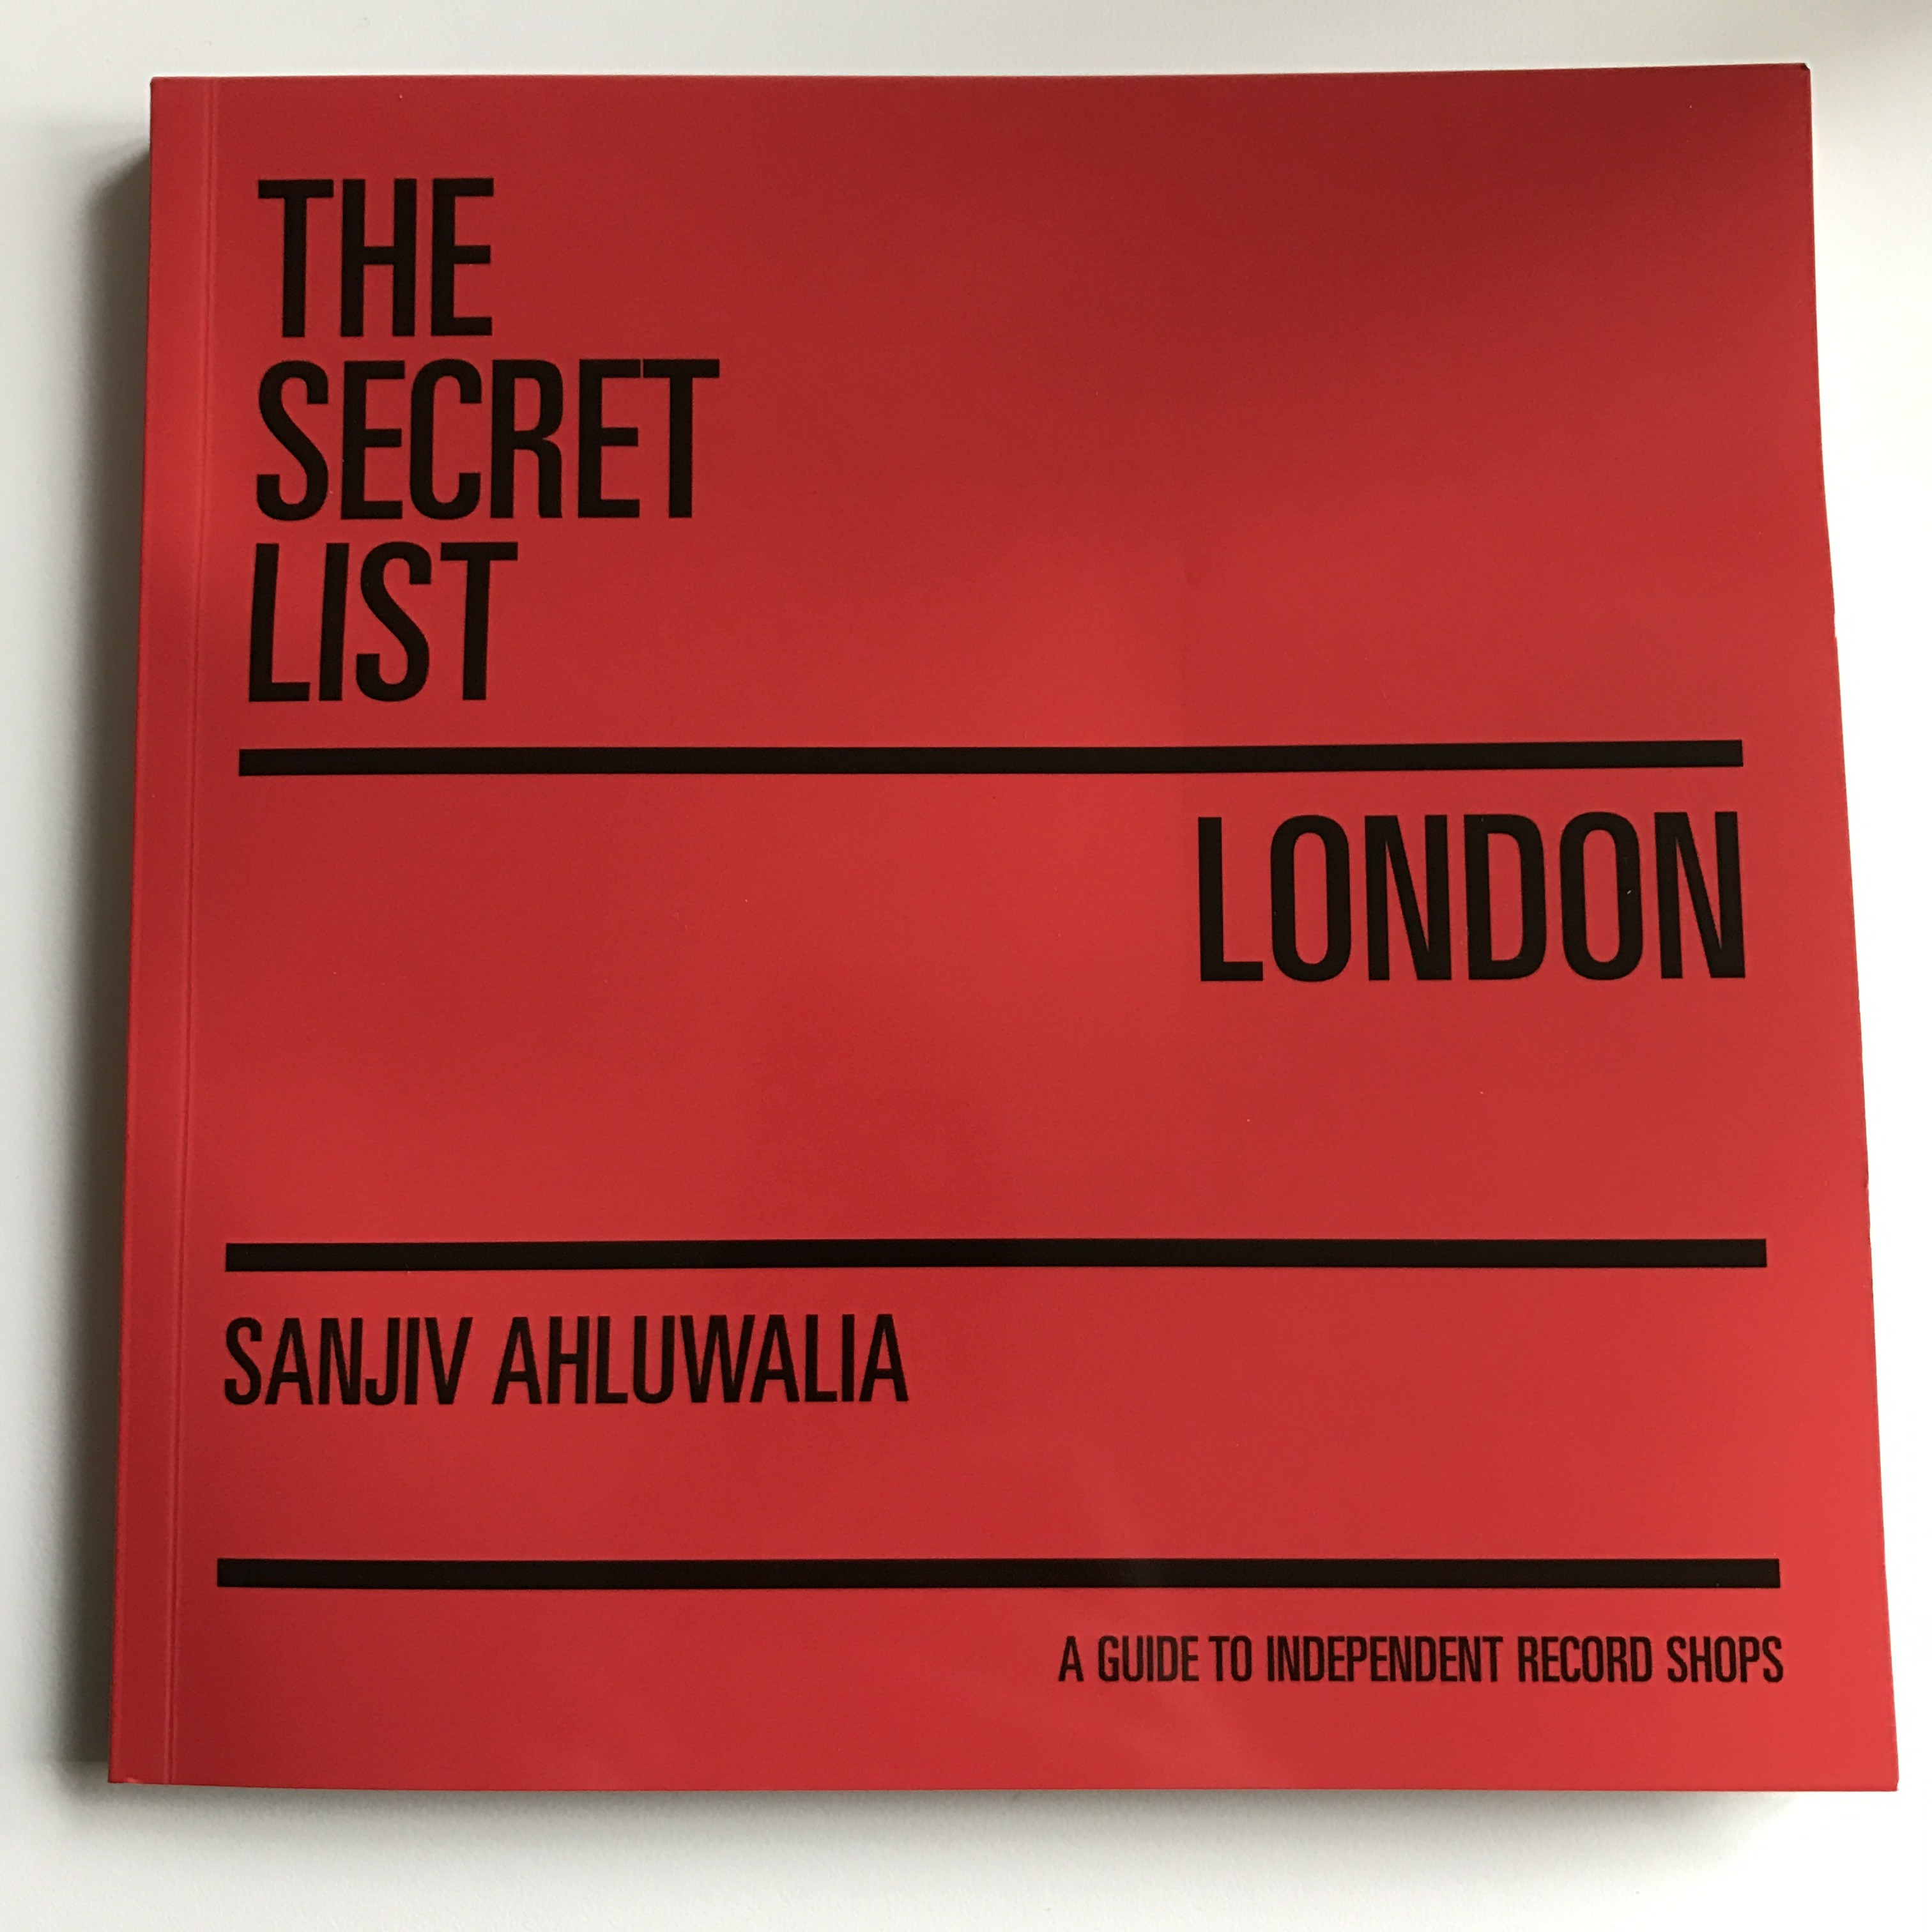 Travelling to London? Check out The Secret List, a guide to the ...